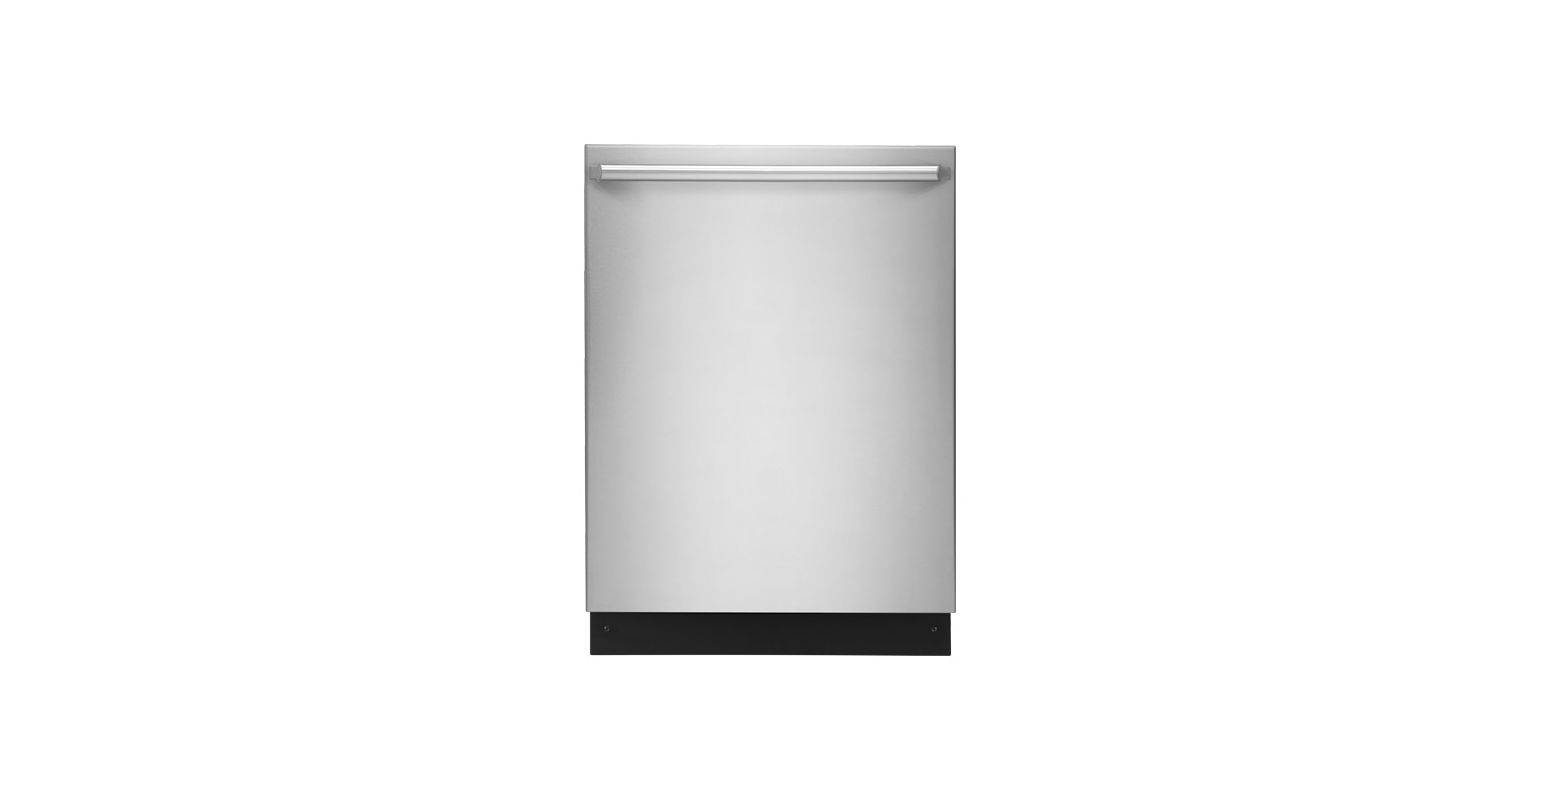 Electrolux EW24ID80QS 24 Inch Wide Built-In Dishwasher with Third-Level Rack photo